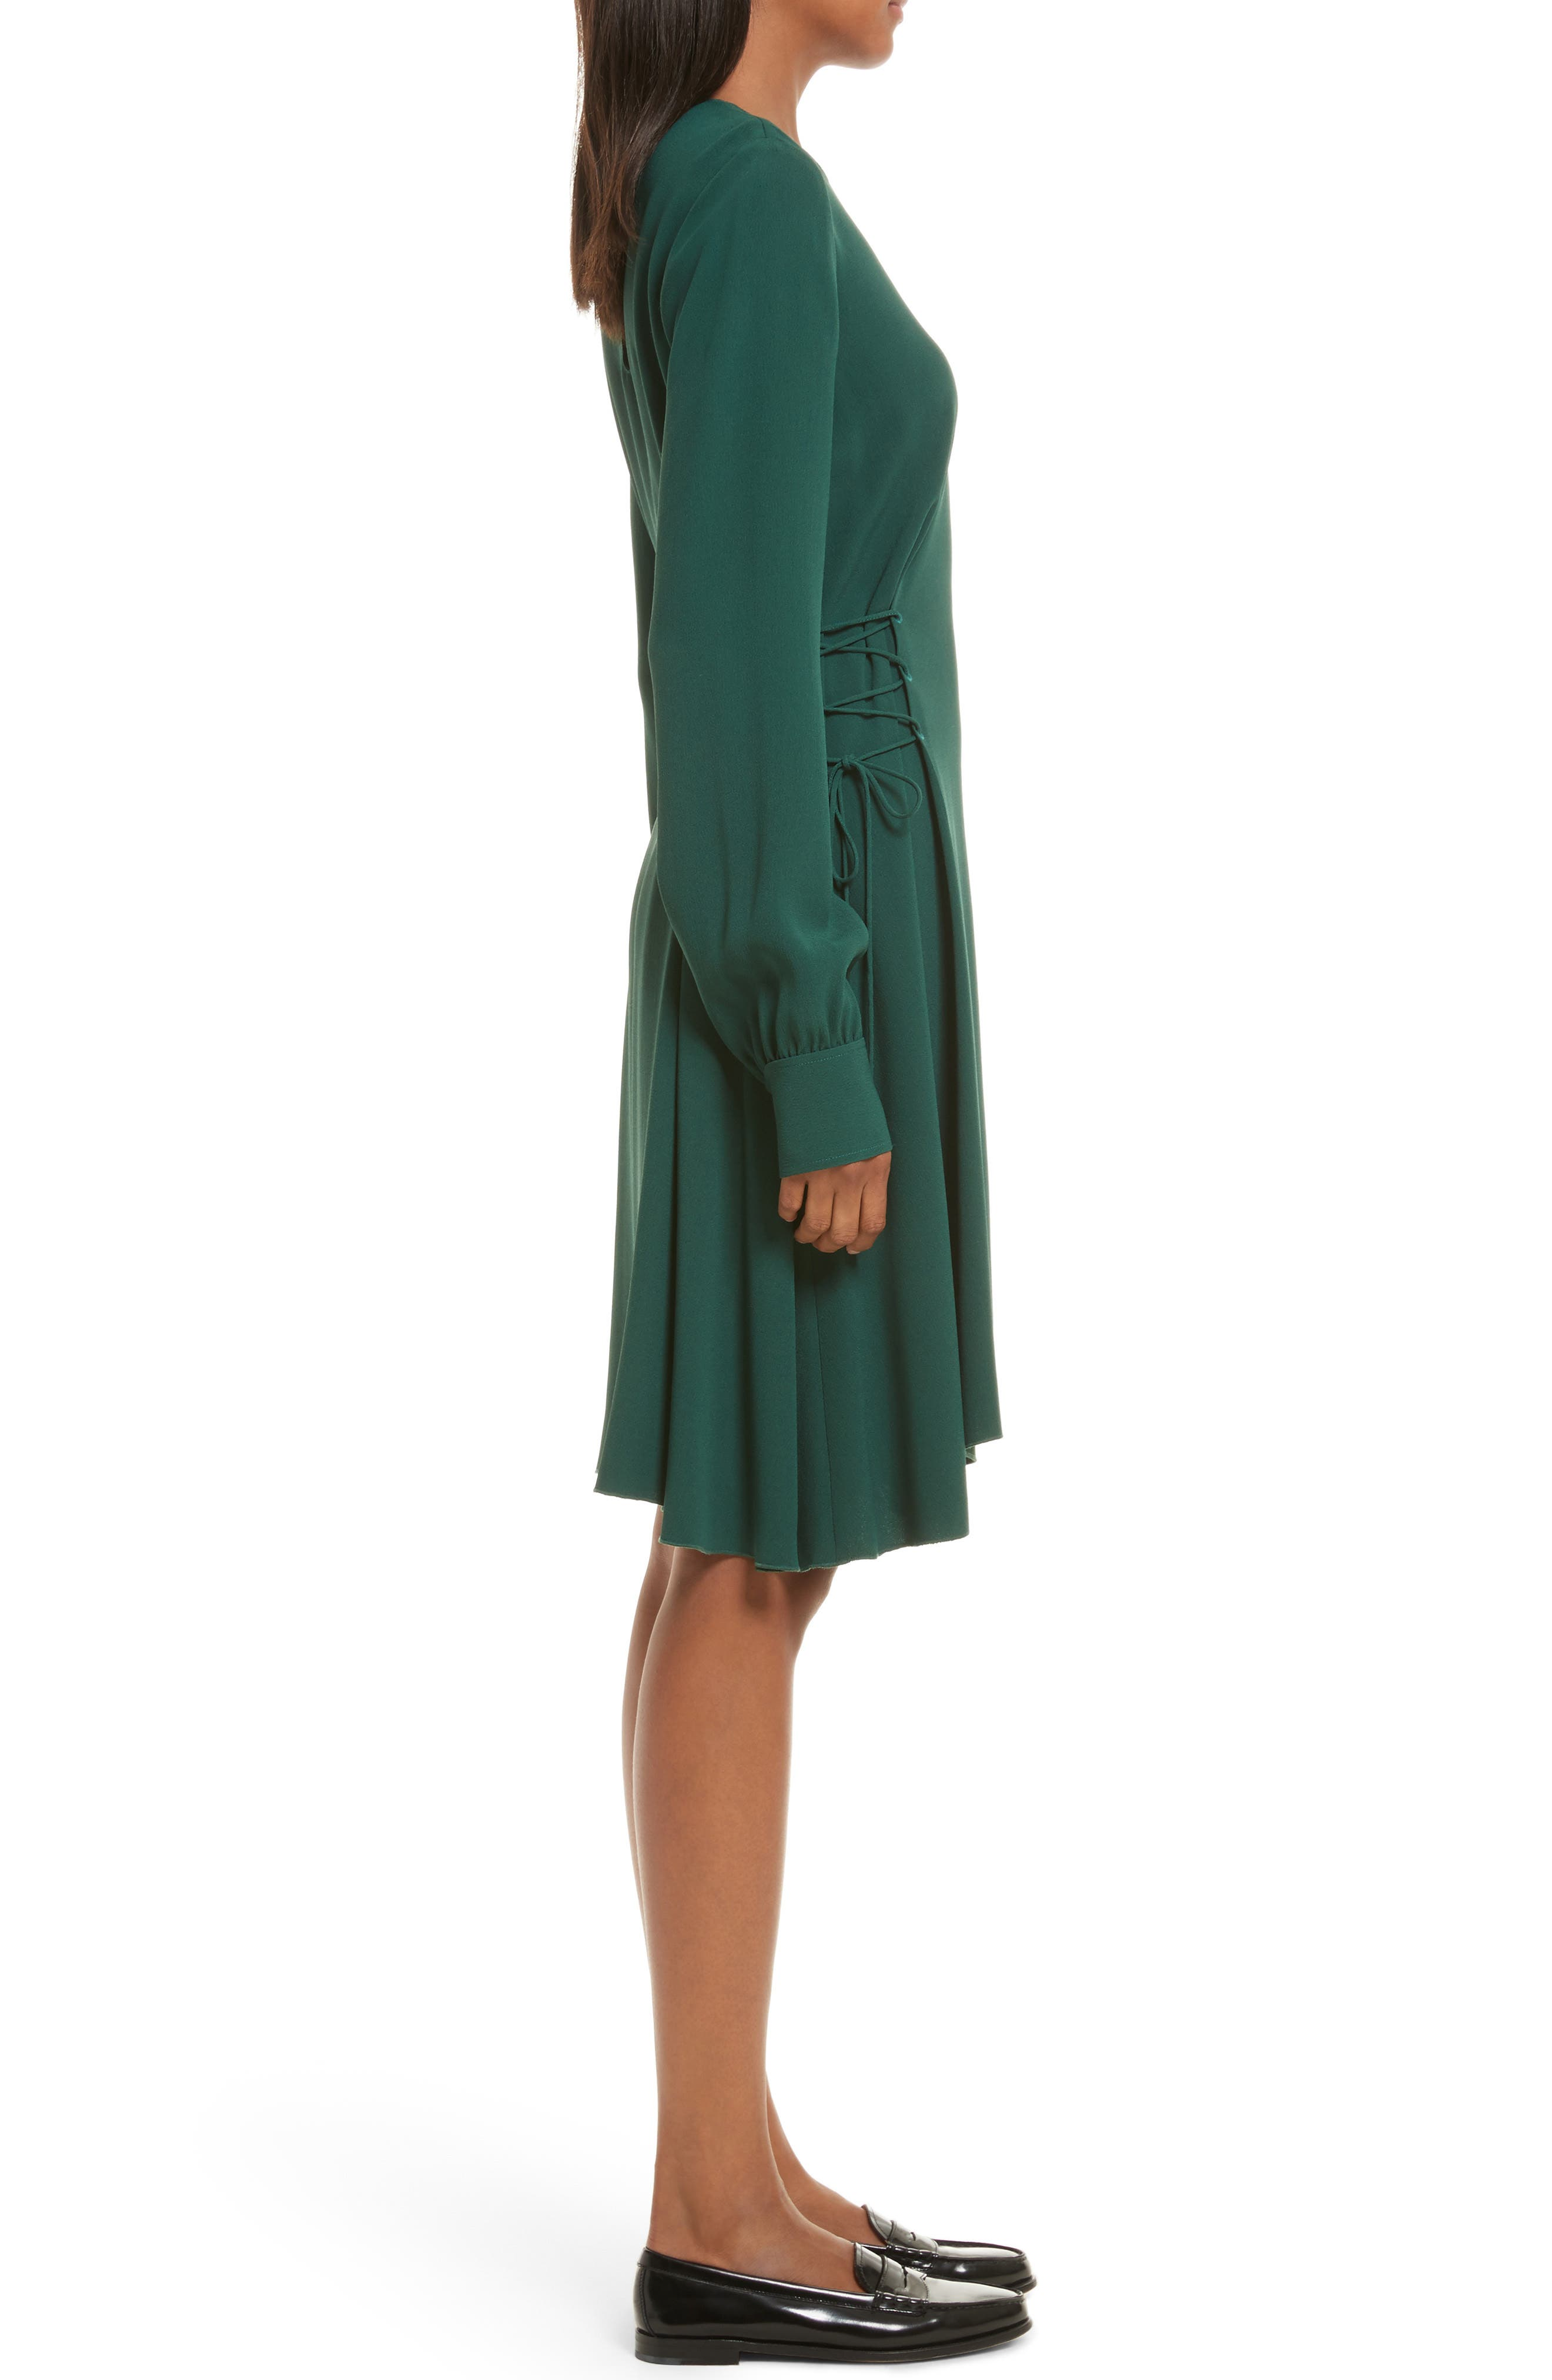 Kensington Lace-Up A-Line Dress,                             Alternate thumbnail 3, color,                             315